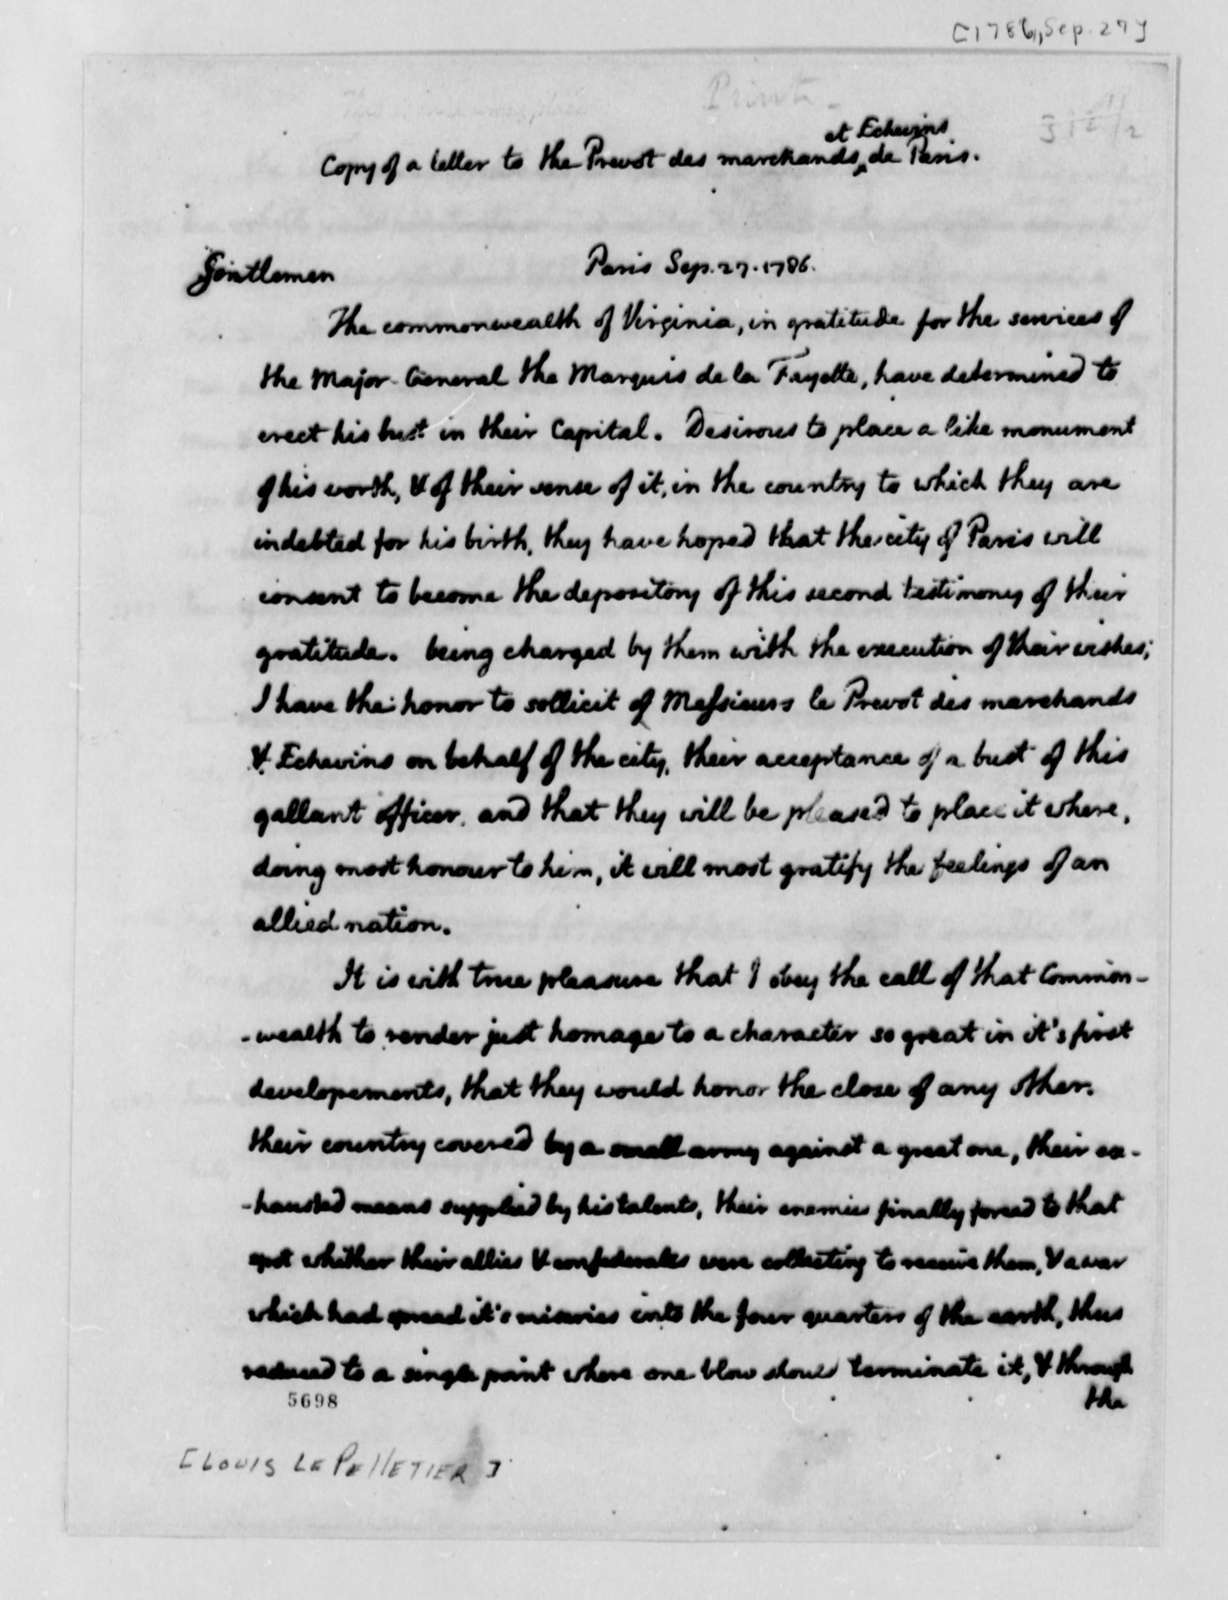 Thomas Jefferson to Louis le Pelletier, September 27, 1787